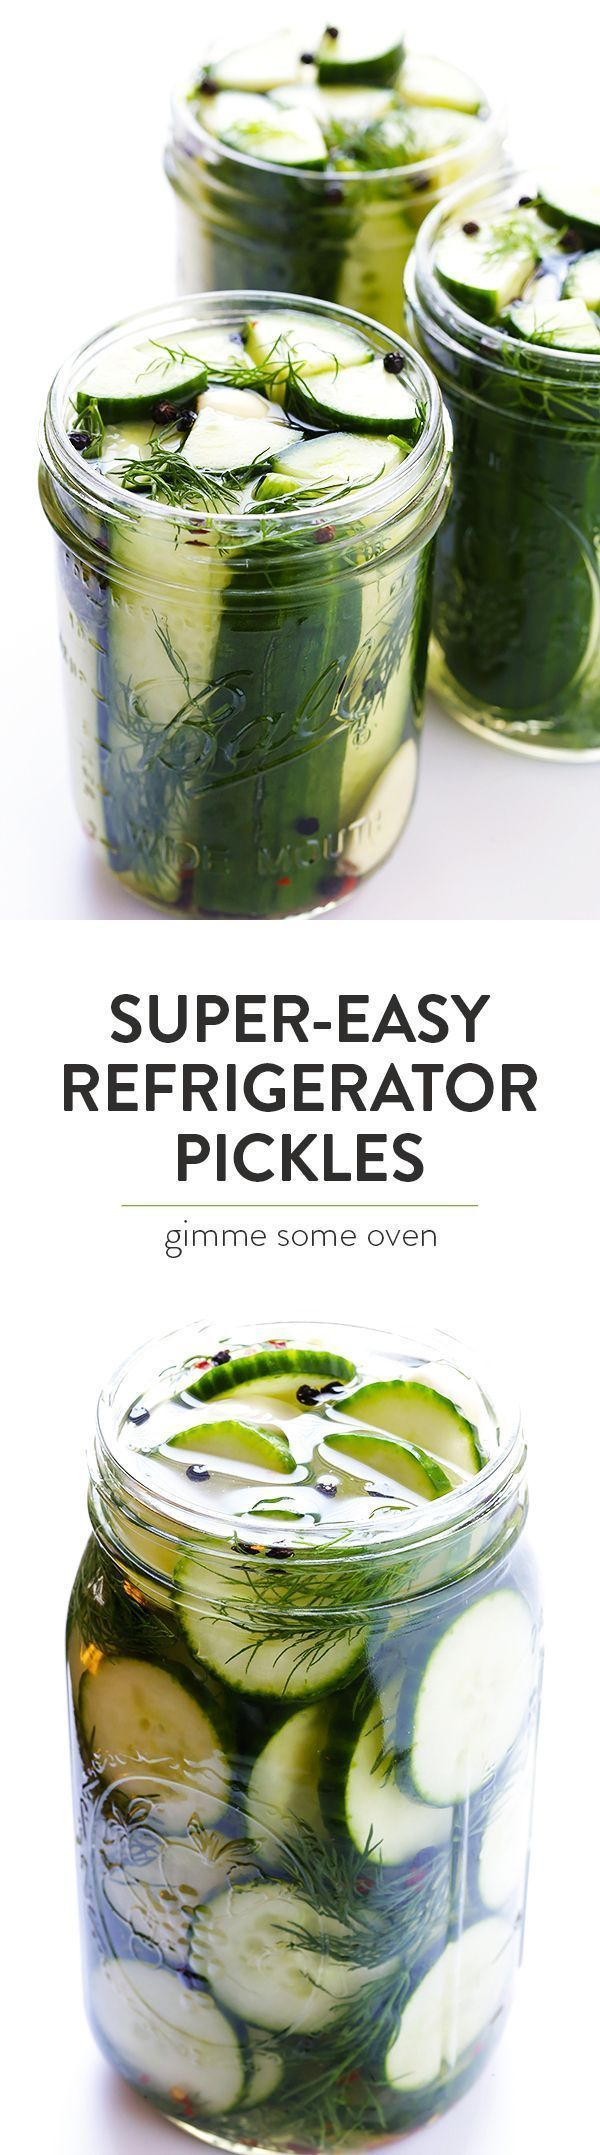 This Easy Refrigerator Pickles recipe only takes about 5 minutes to prep, and makes crisp and delicious pickles.